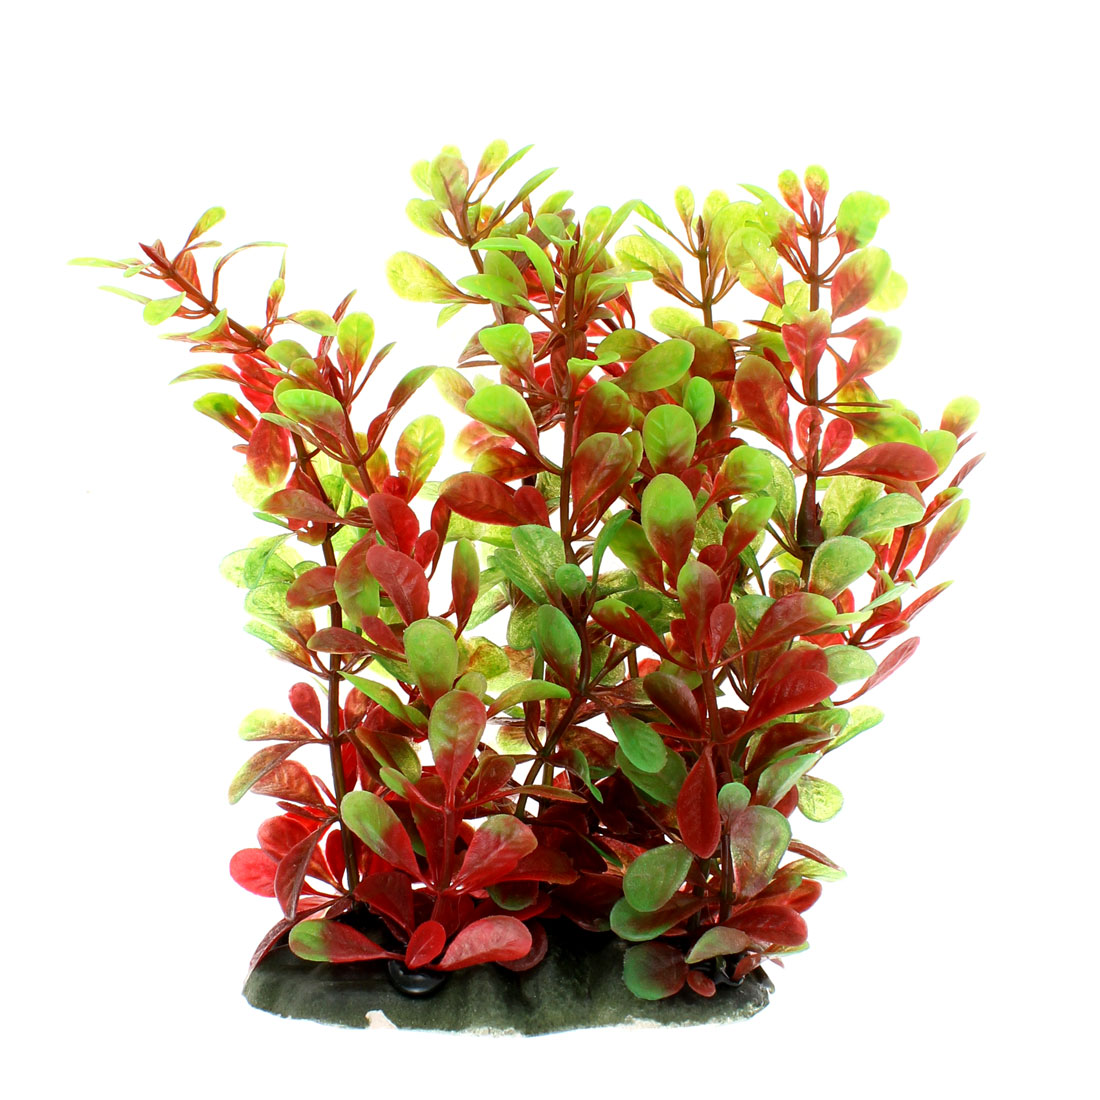 Aquarium Fish Tank Simulation Underwater Plant Grass Ornament 15 x 11cm